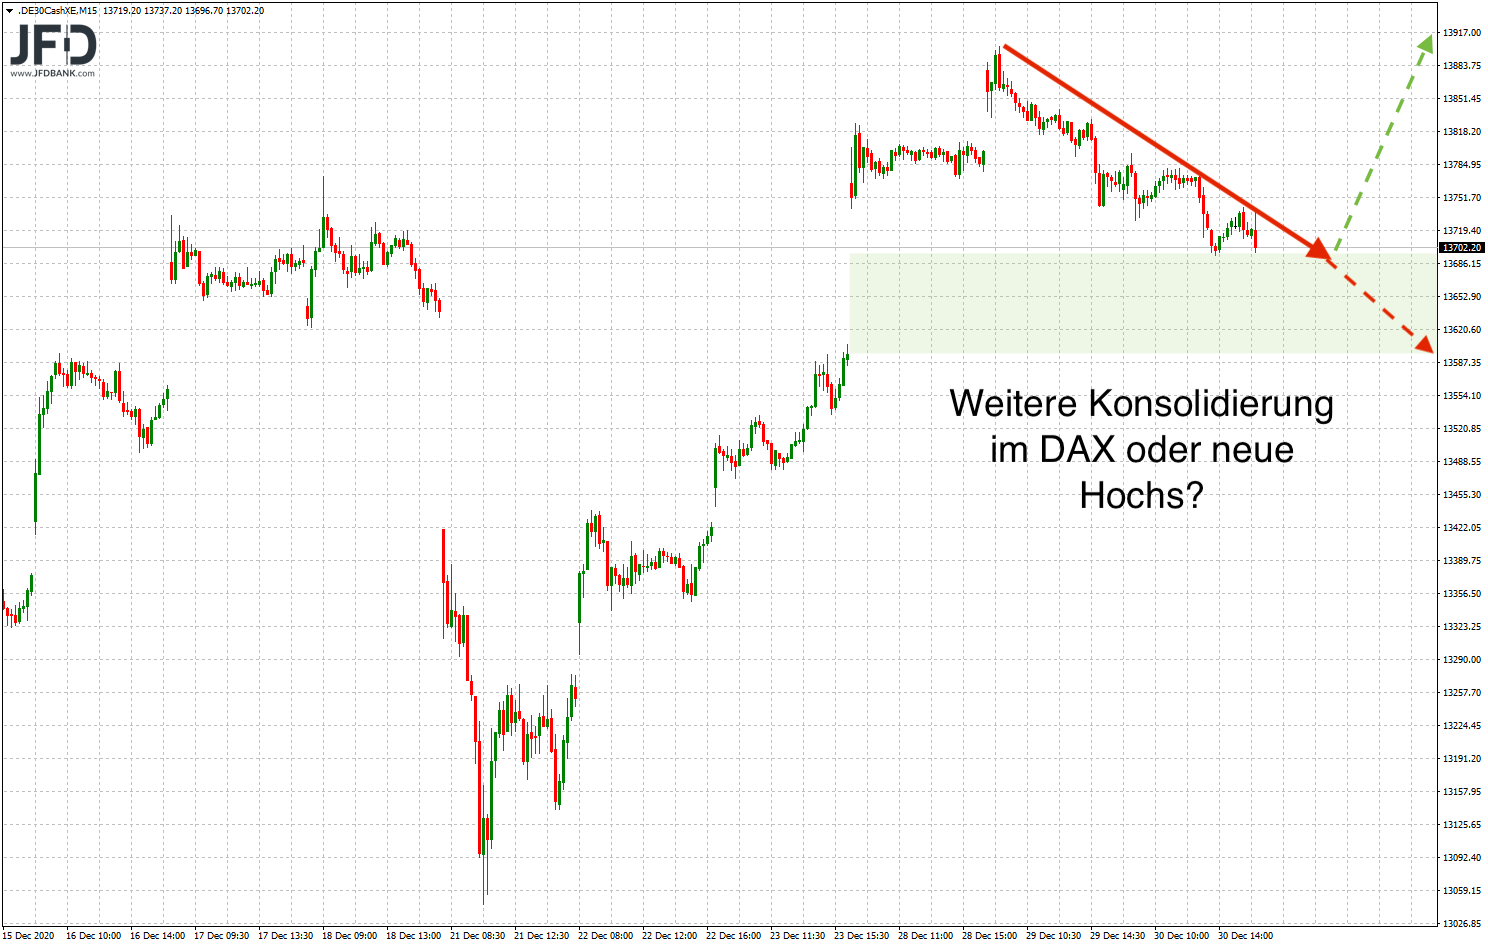 20210103_dax_teaser_kw01.png